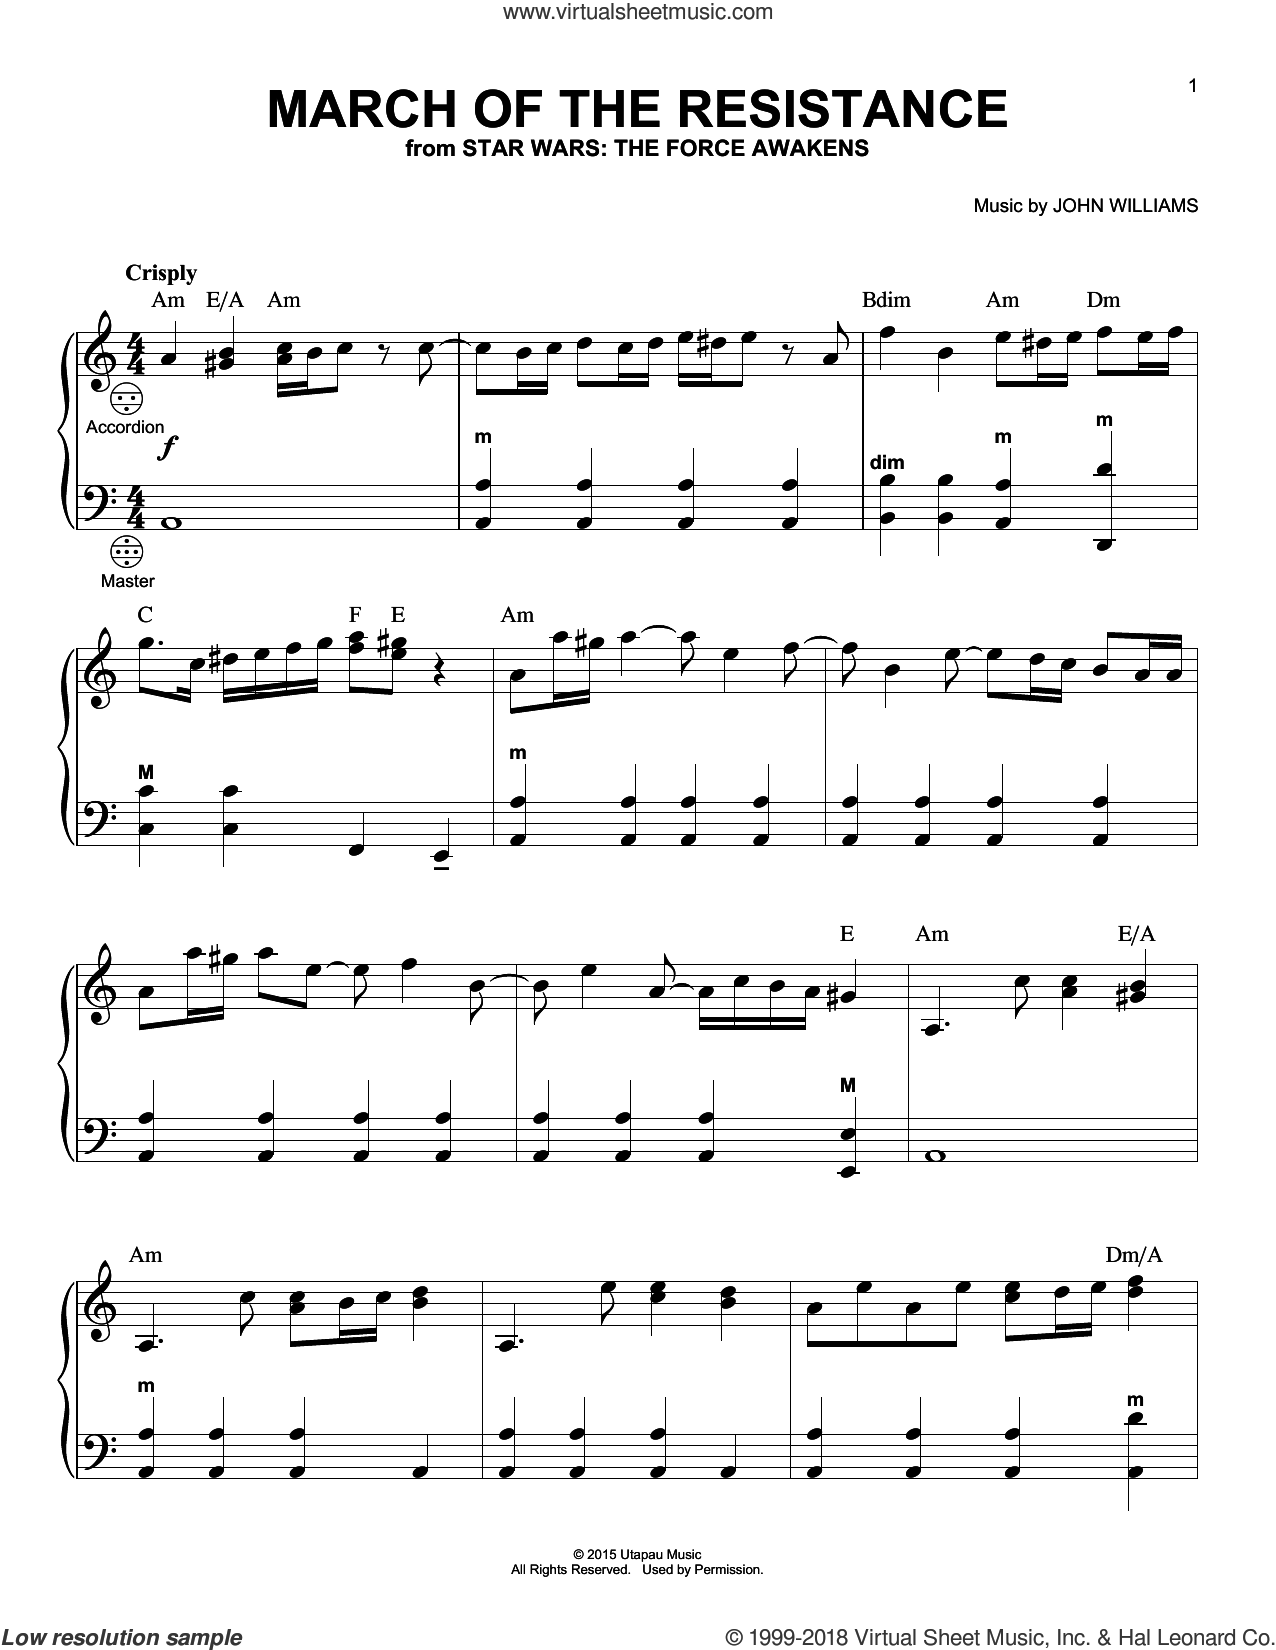 March Of The Resistance sheet music for accordion by John Williams, intermediate skill level